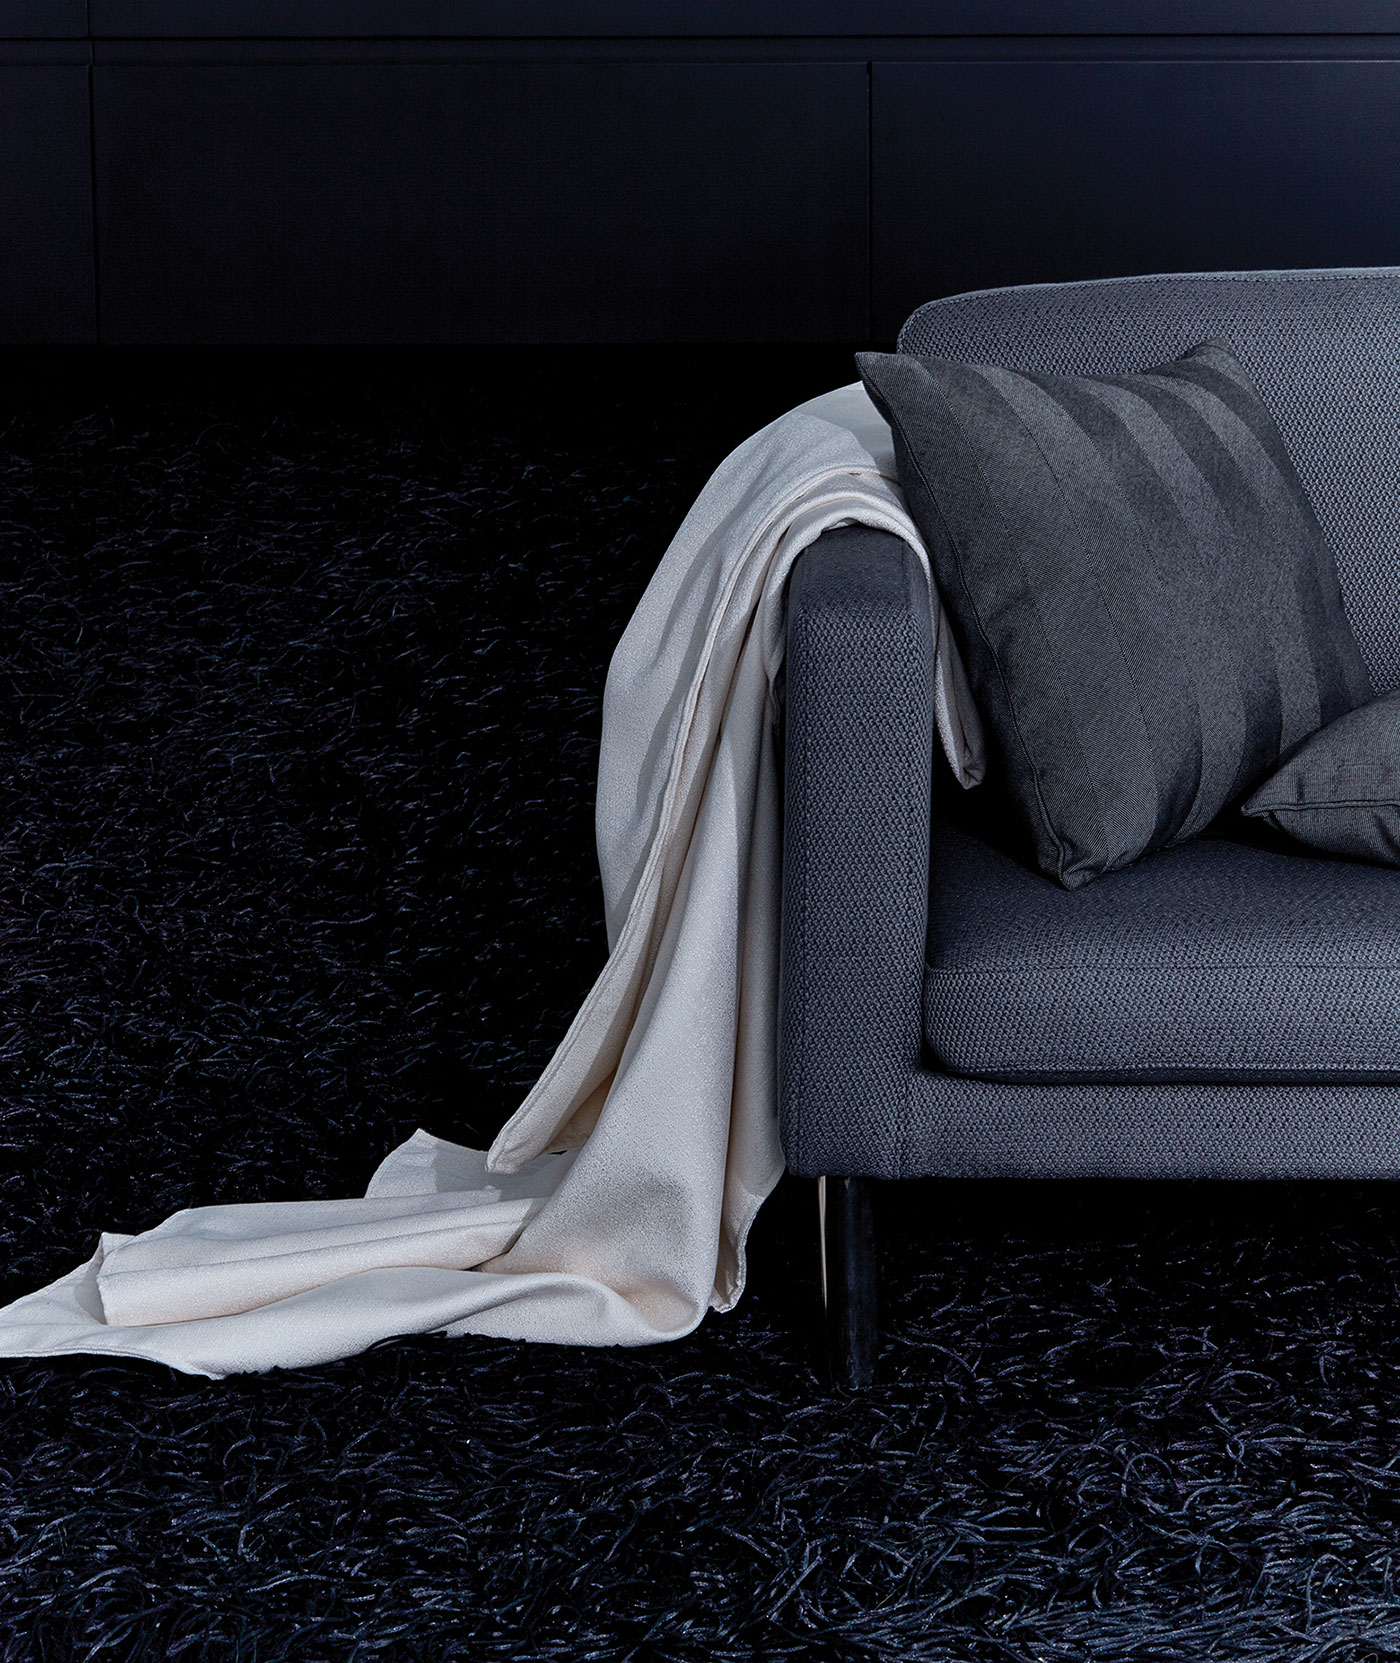 A grey sofa with a grey striped throw pillow and white throw blanket made using Sunbrella fabrics.